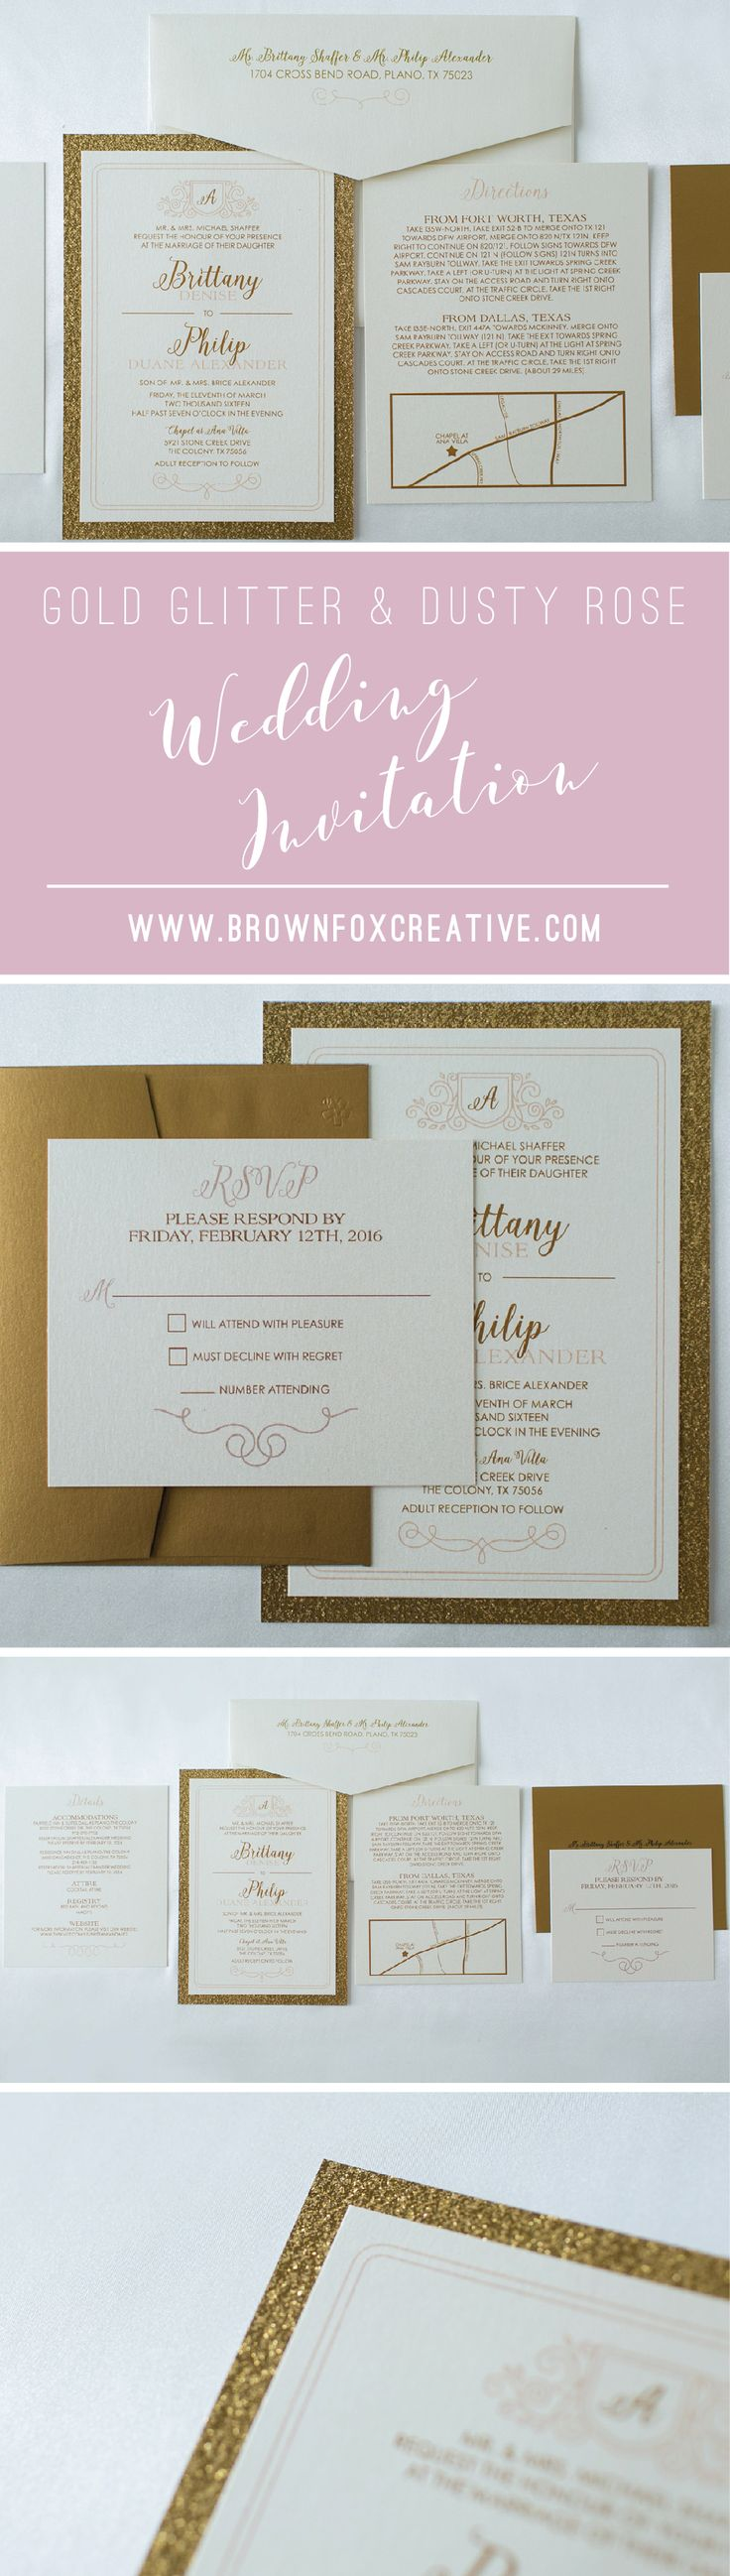 Two Layer Gold Glitter and Blush Rose Pink Formal Elegant Wedding Invitation, RSVP & Directions with Map - Multiple Color Options Available!